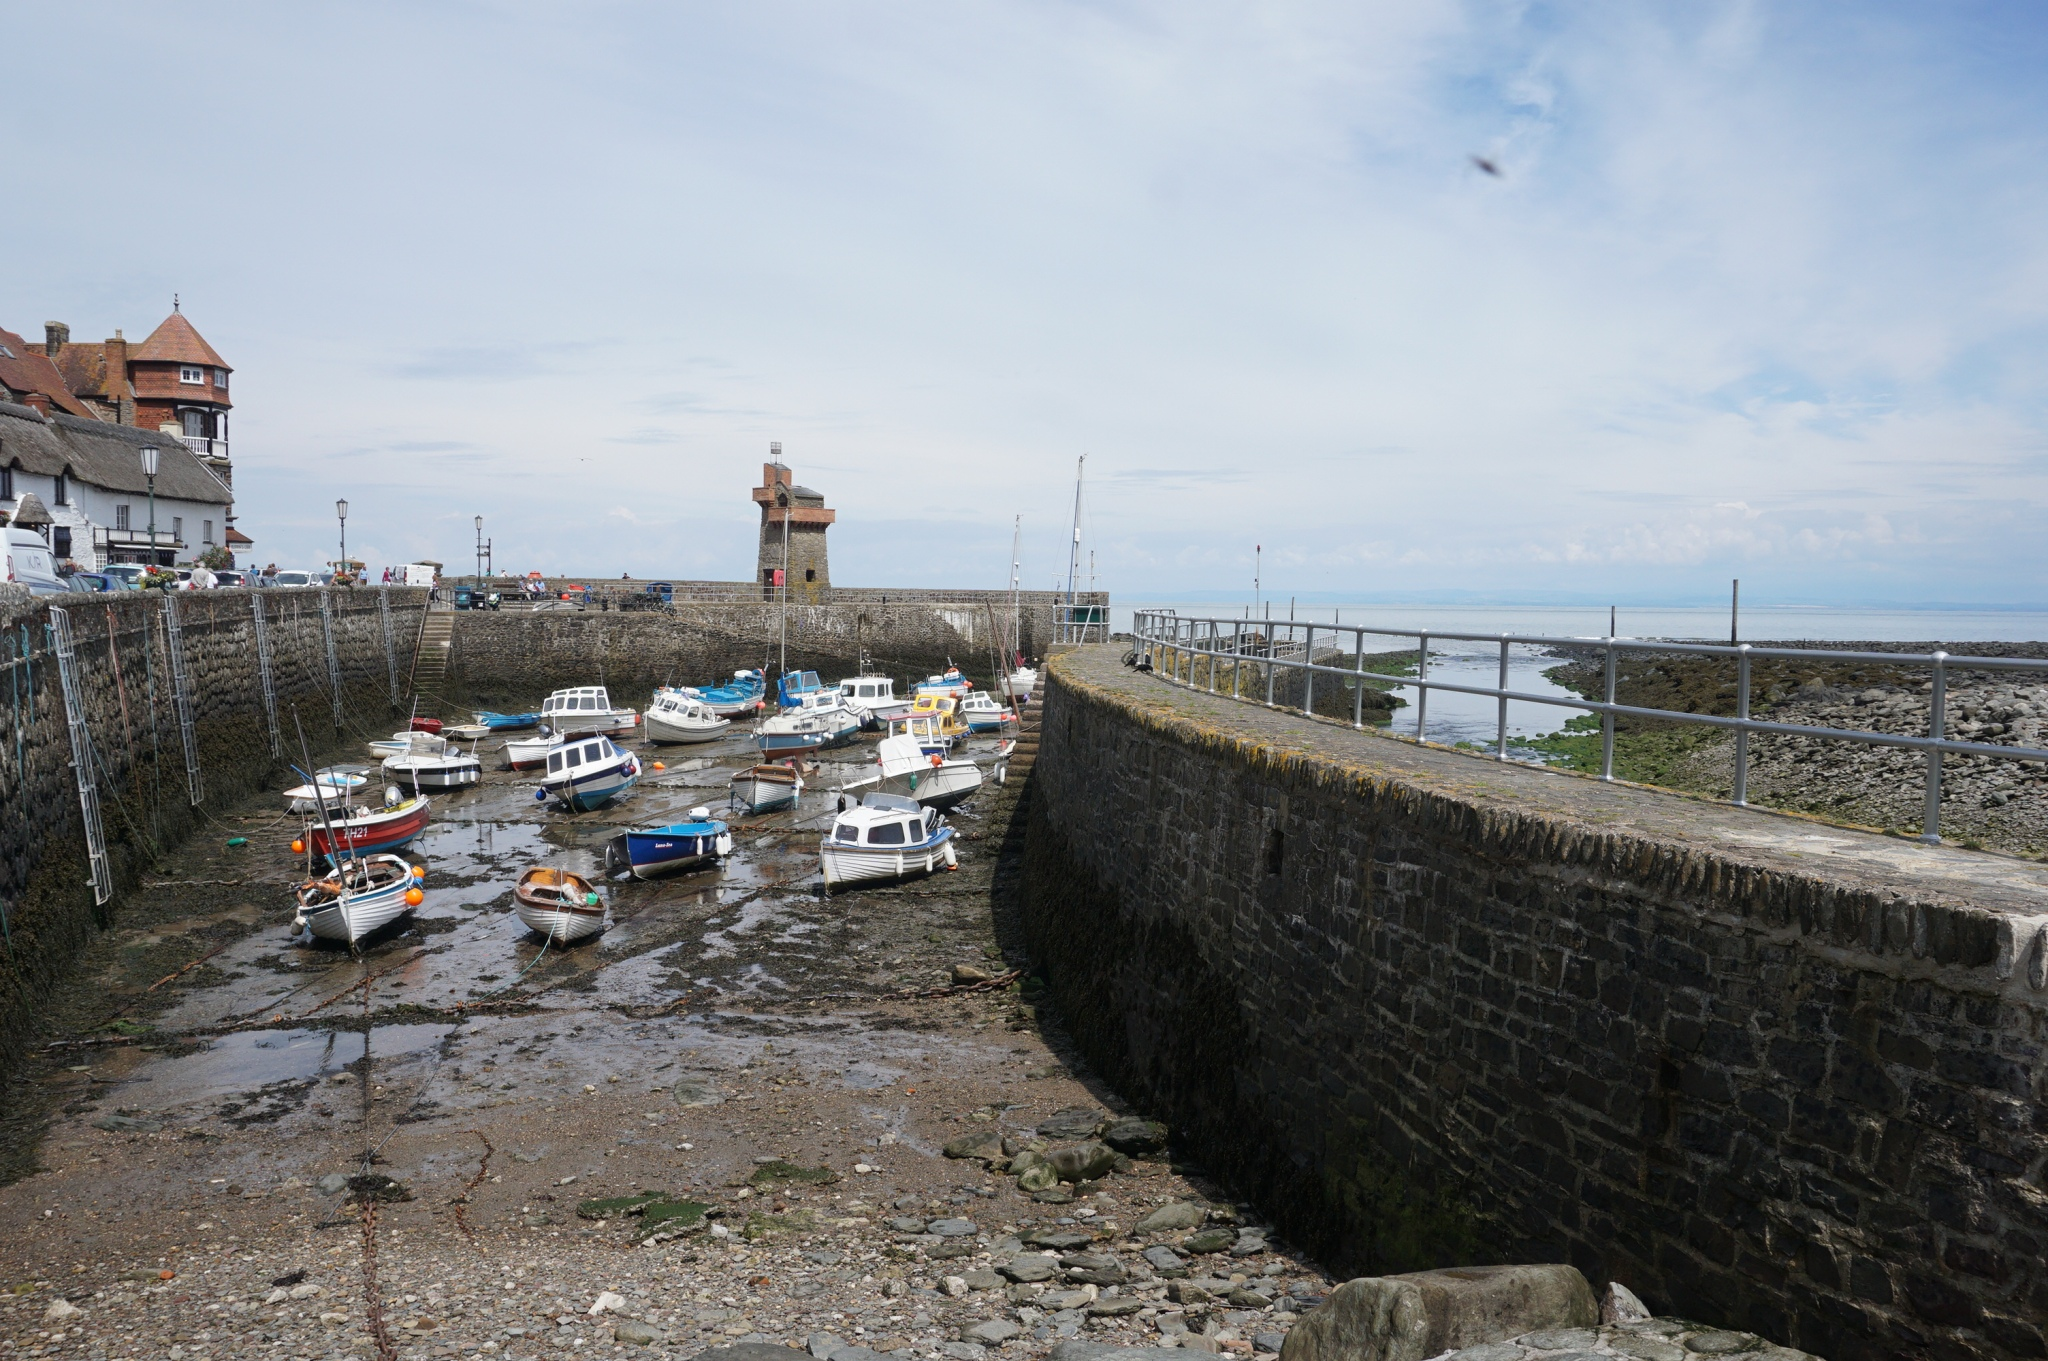 Lynmouth, UK, seaside towns, Devonshire, high tide